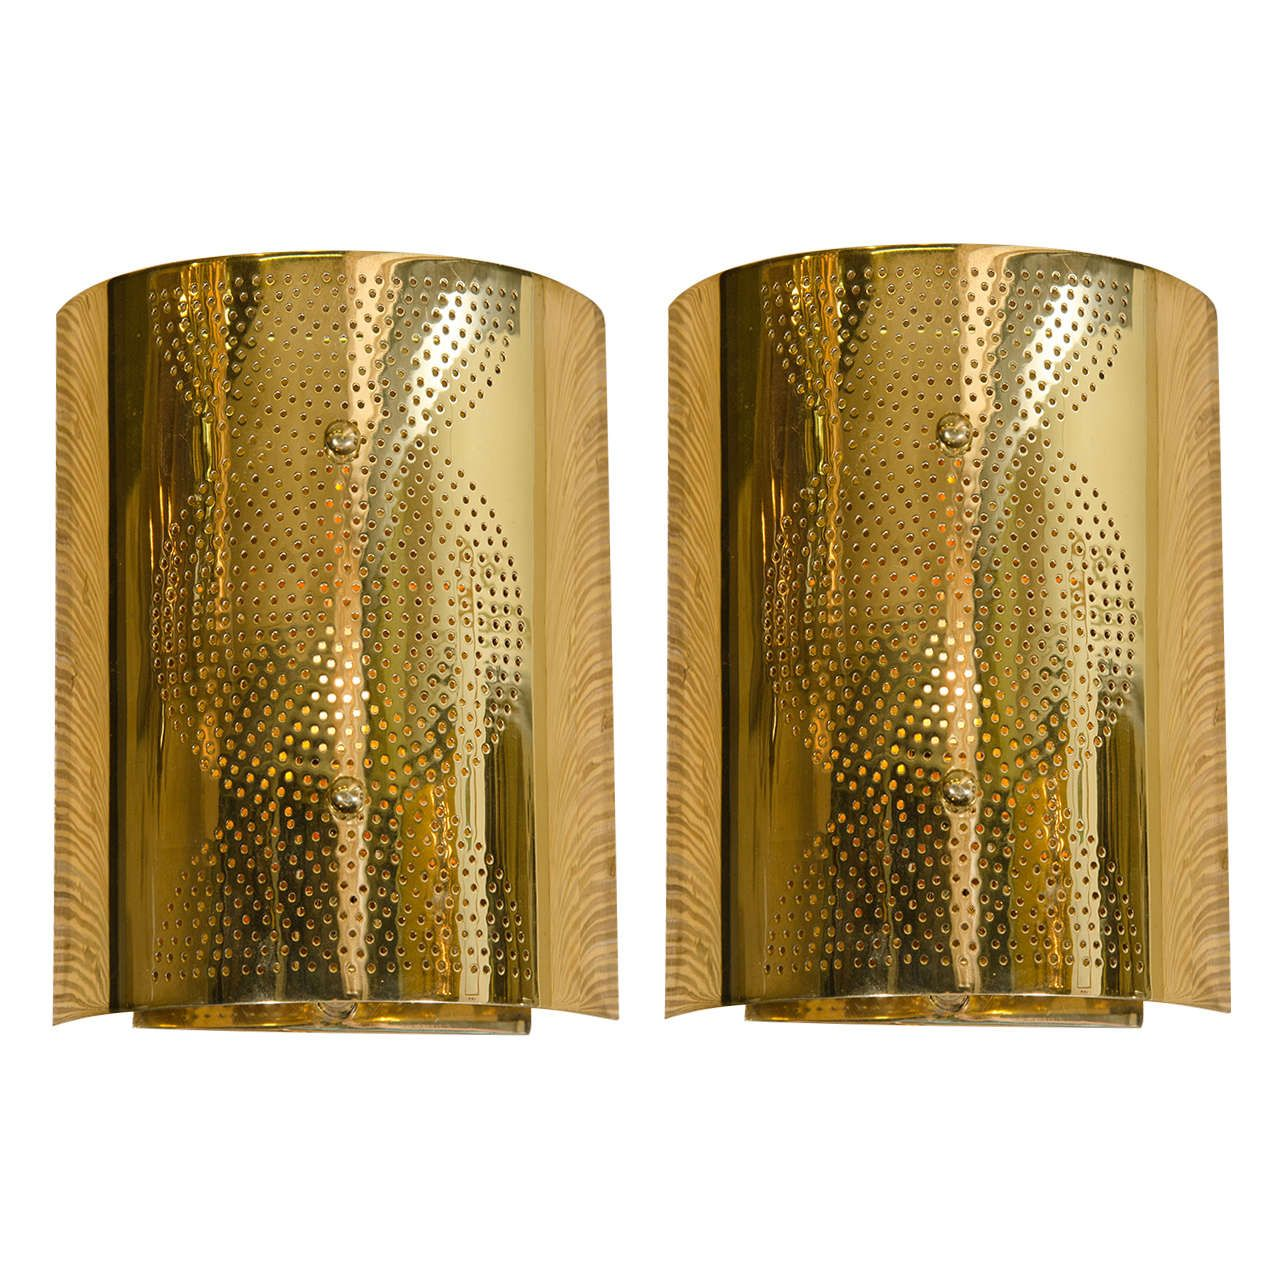 Contemporary Perforated Brass Wall Sconce | Wall sconces, Modern ...